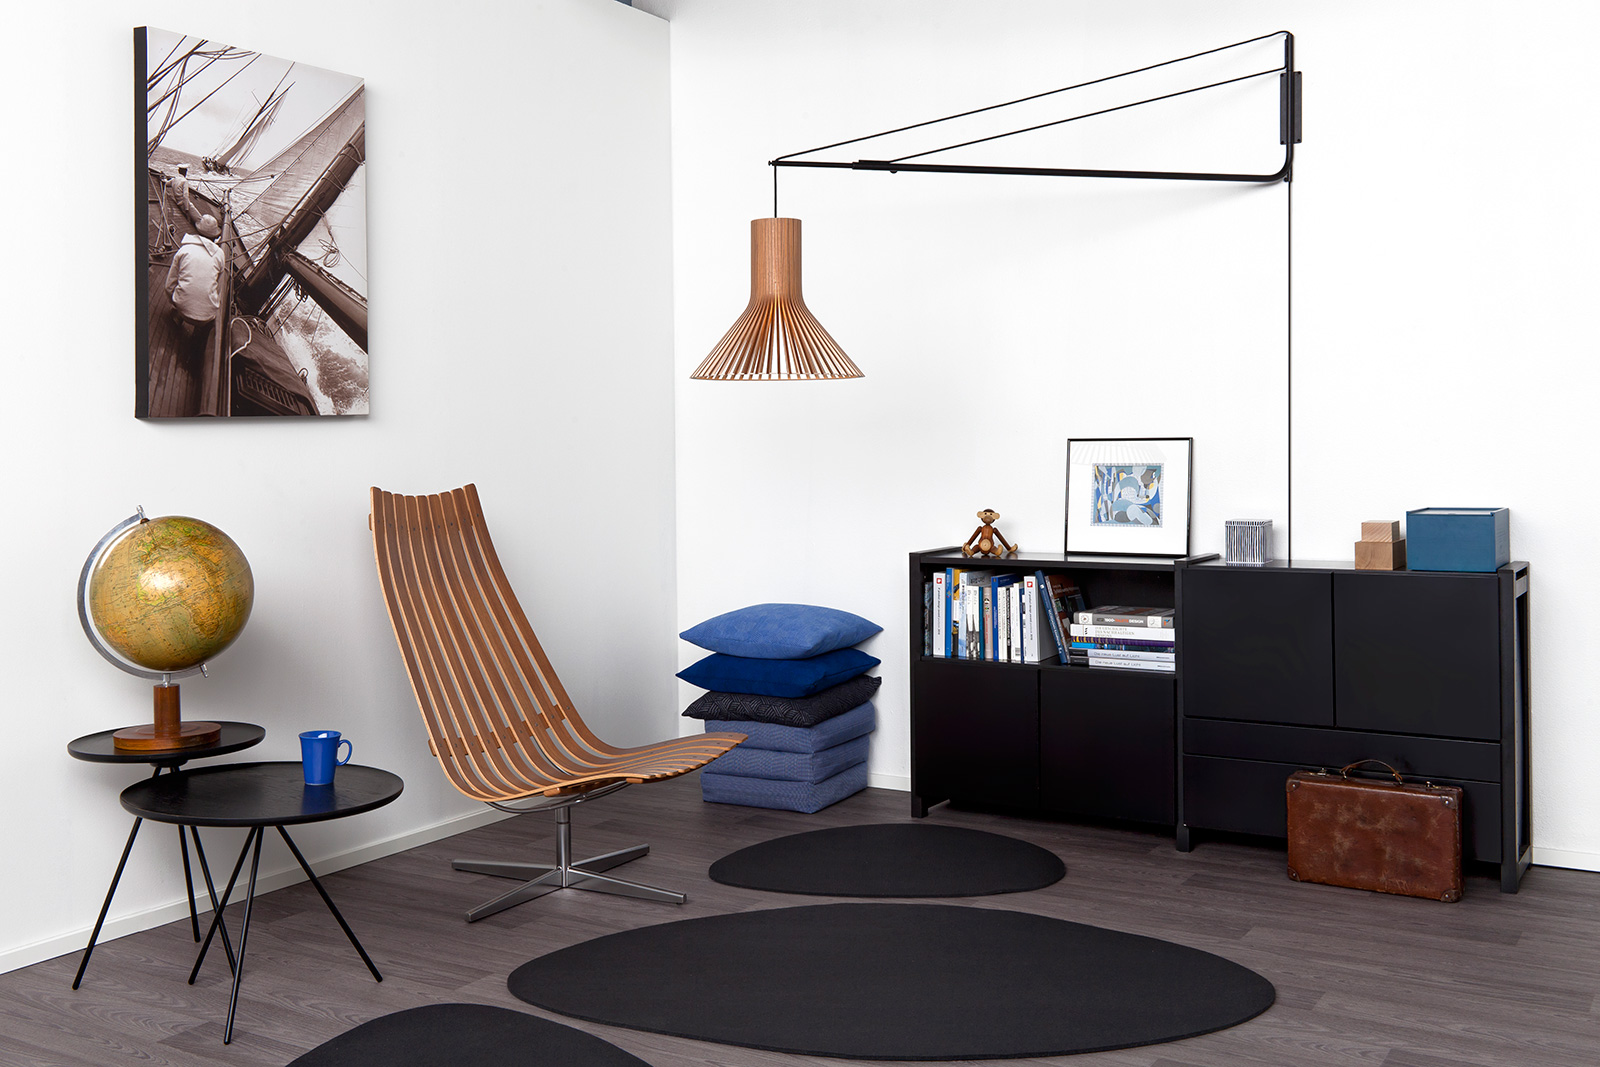 Secto_Design_Varsi_1000_Living_Room_1_Puncto_4203_web